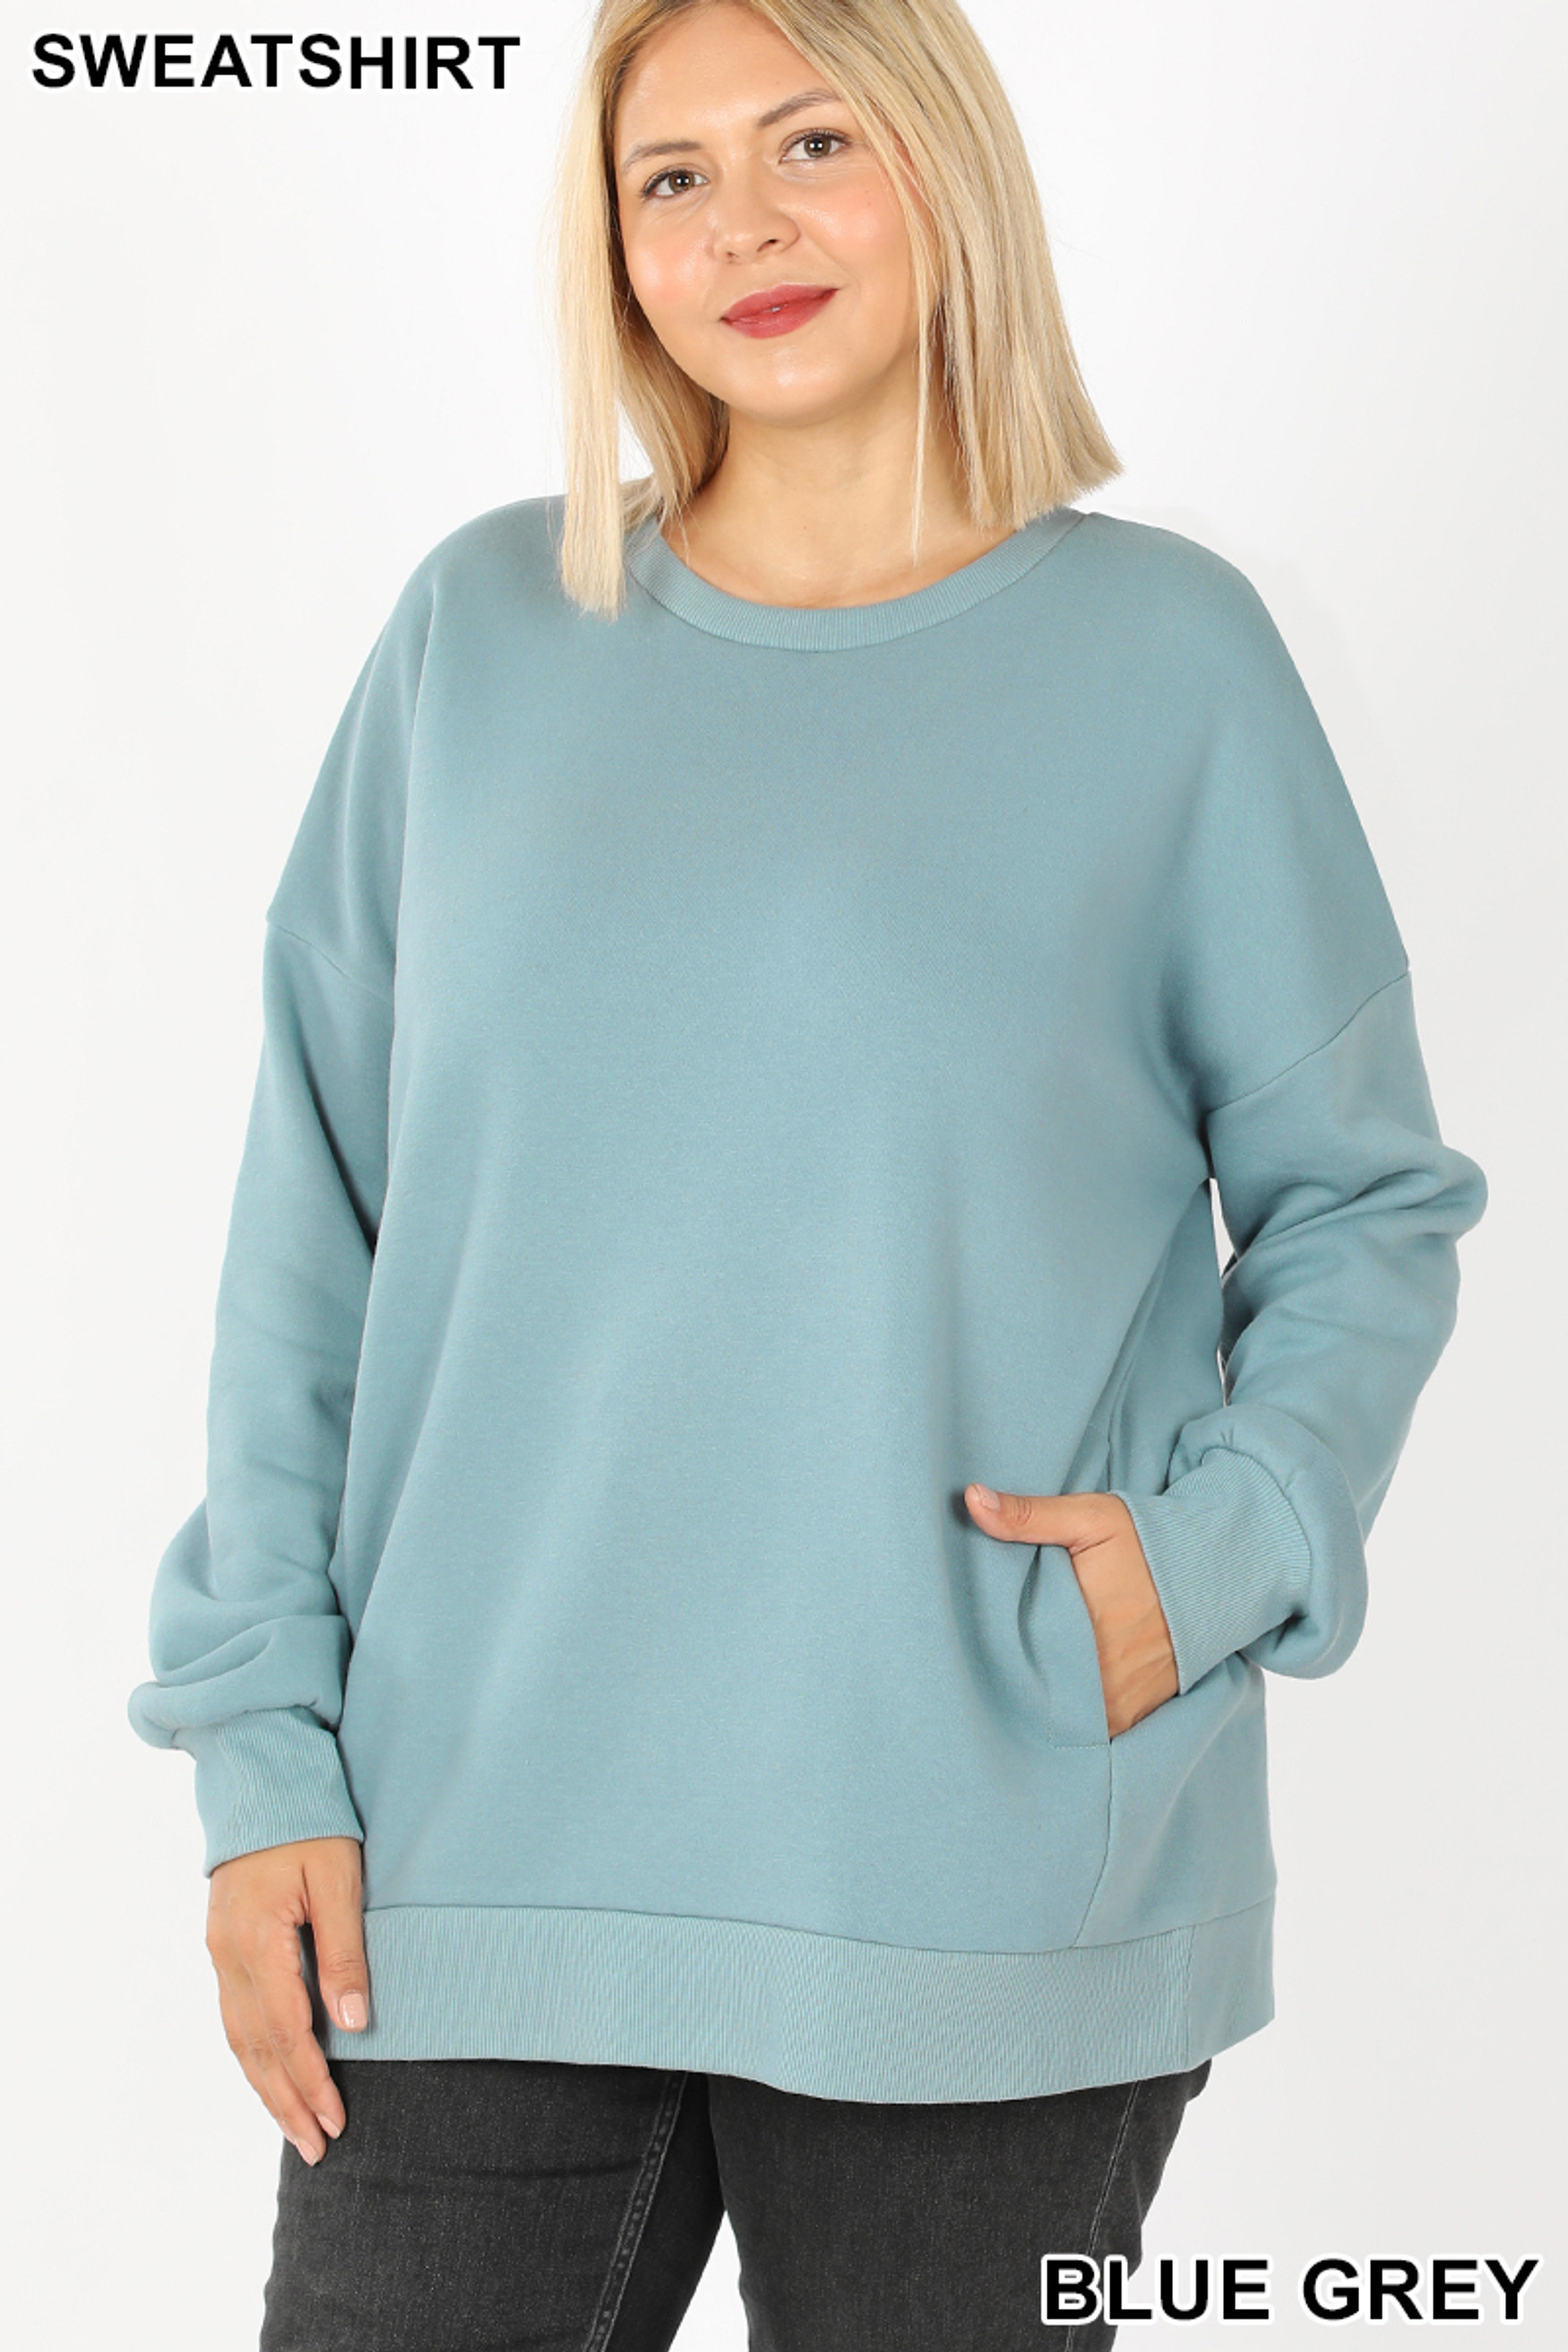 Front image of Blue Grey Cotton Round Crew Neck Plus Size Sweatshirt with Side Pockets